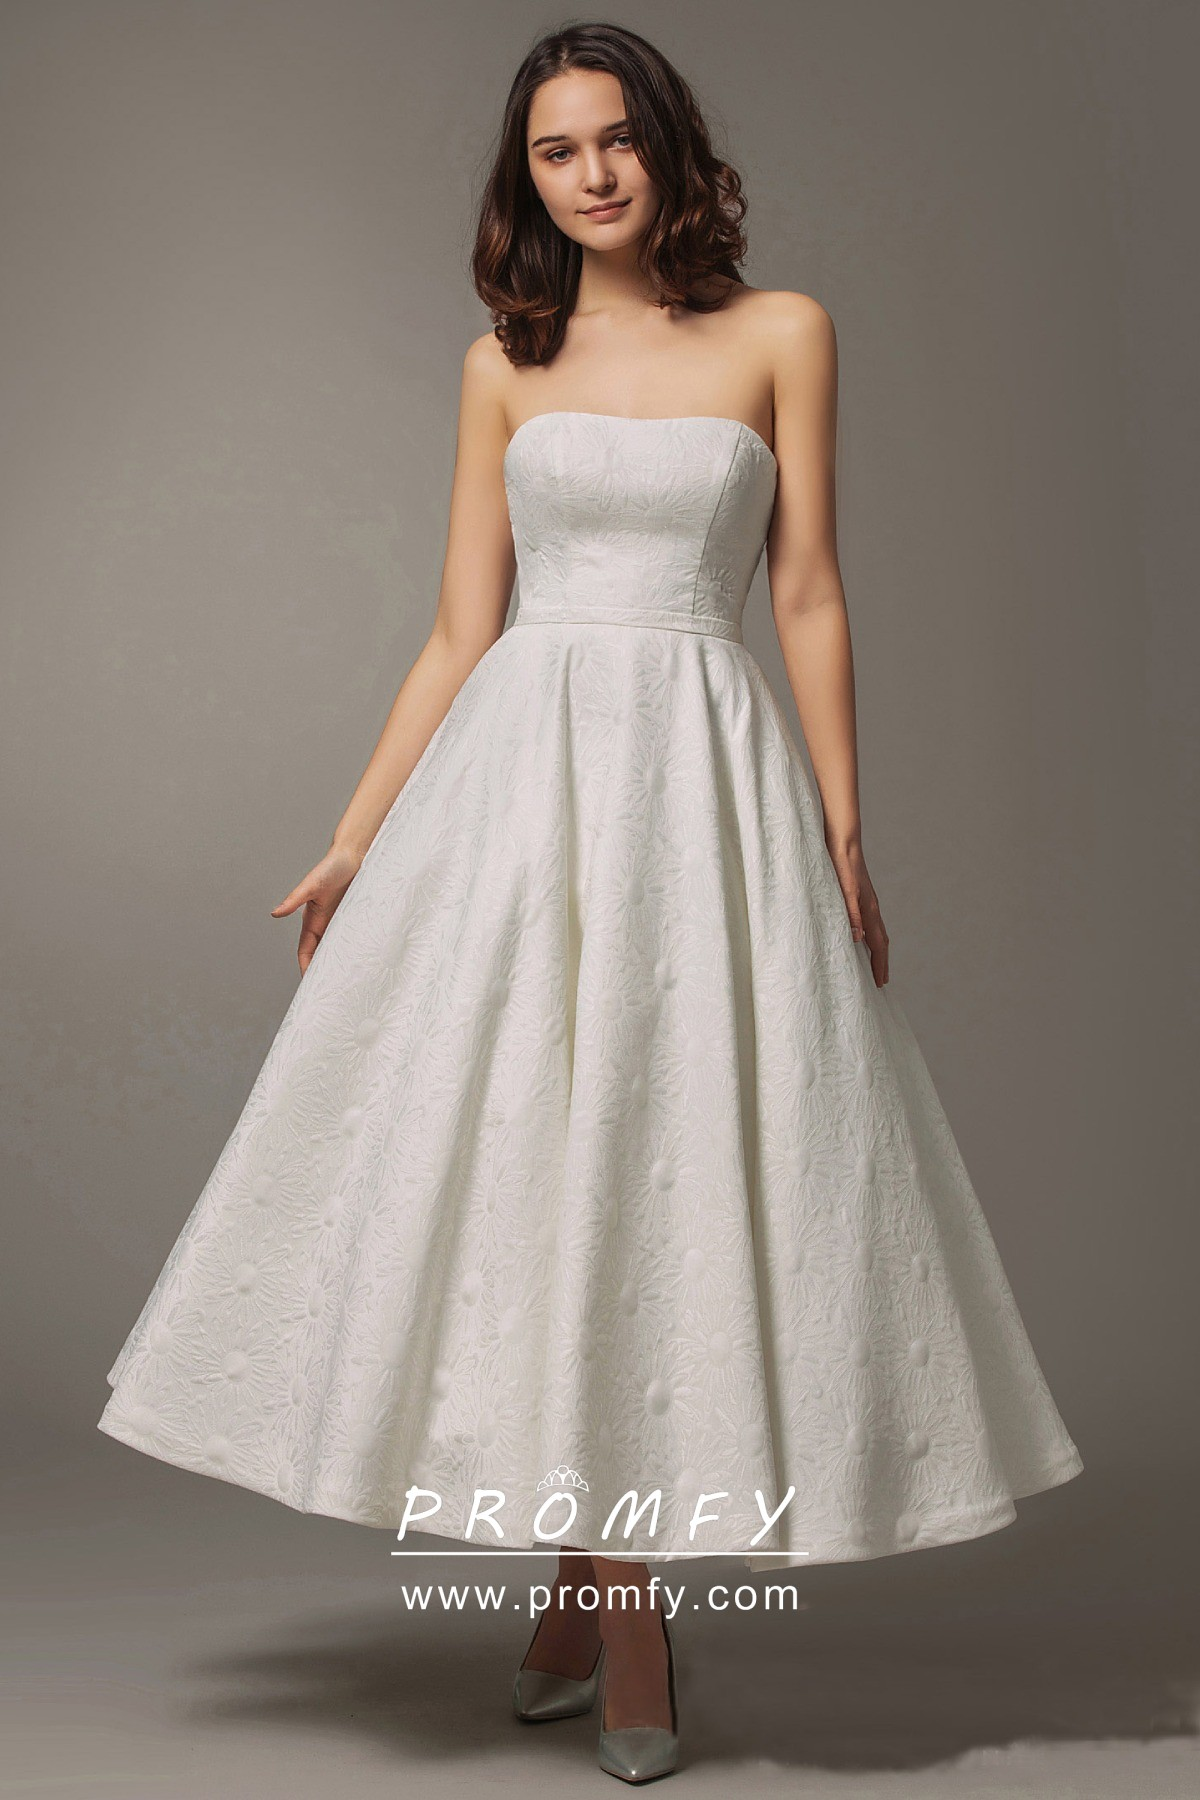 Simple Strapless Tea Length Puffy Wedding Dress With Pockets